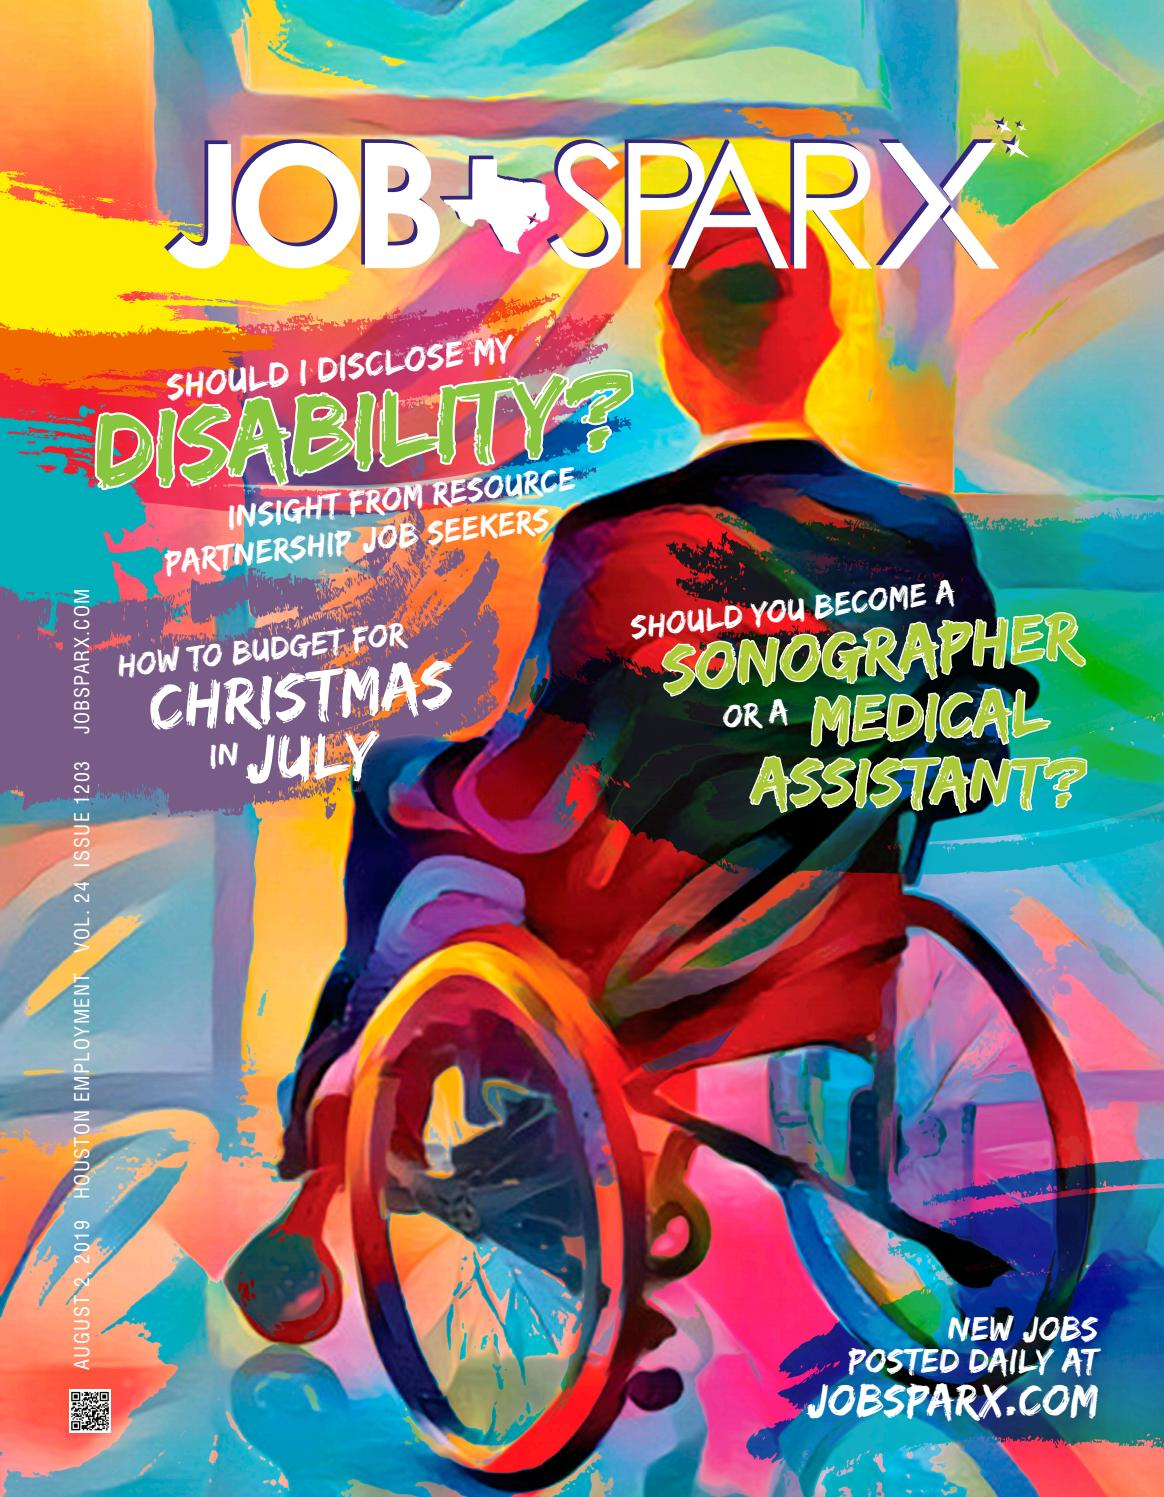 JobSparx Magazine - August 2, 2019 by JobSparx - issuu